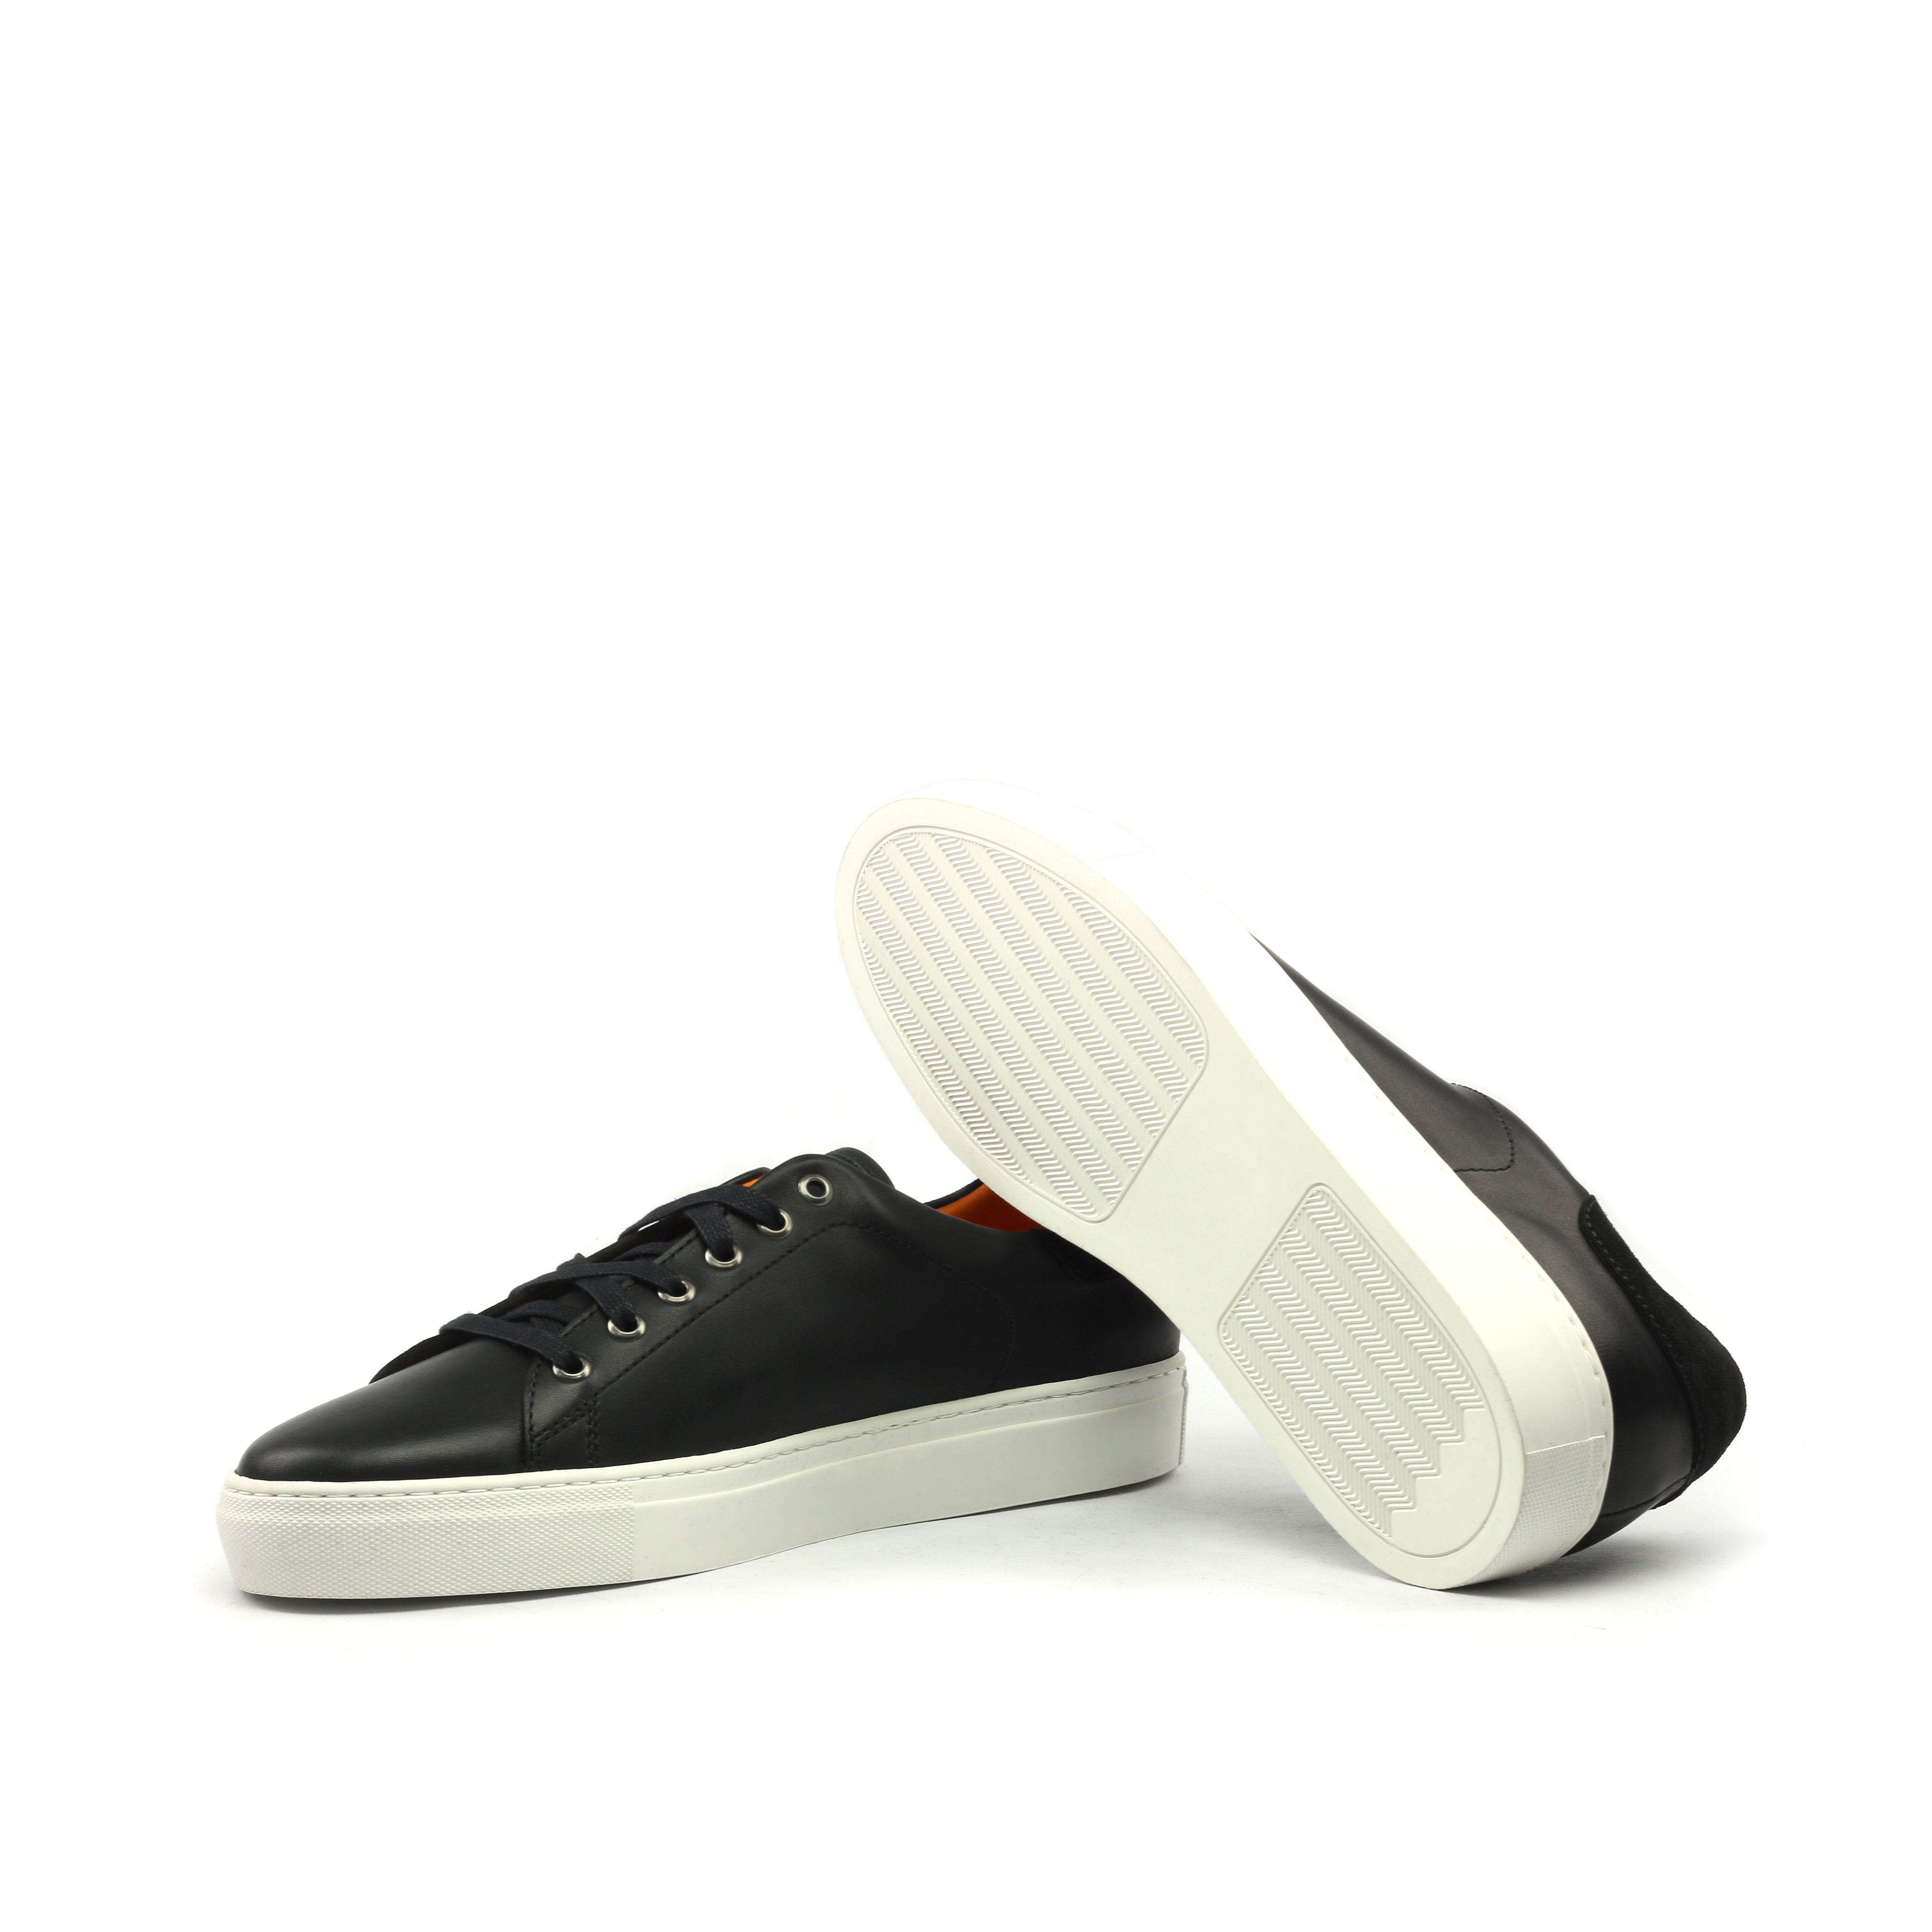 MANOR OF LONDON'The Perry' Painted Black Calfskin Tennis Trainer Luxury Custom Initials Monogrammed Bottom Side View